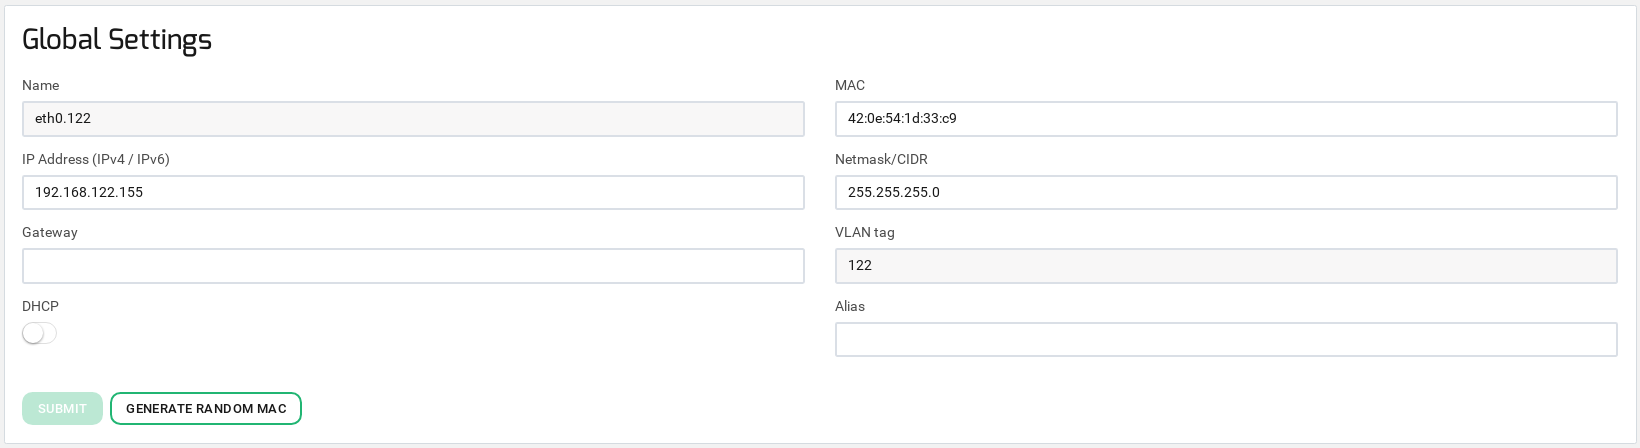 zevenet network vlan update settings